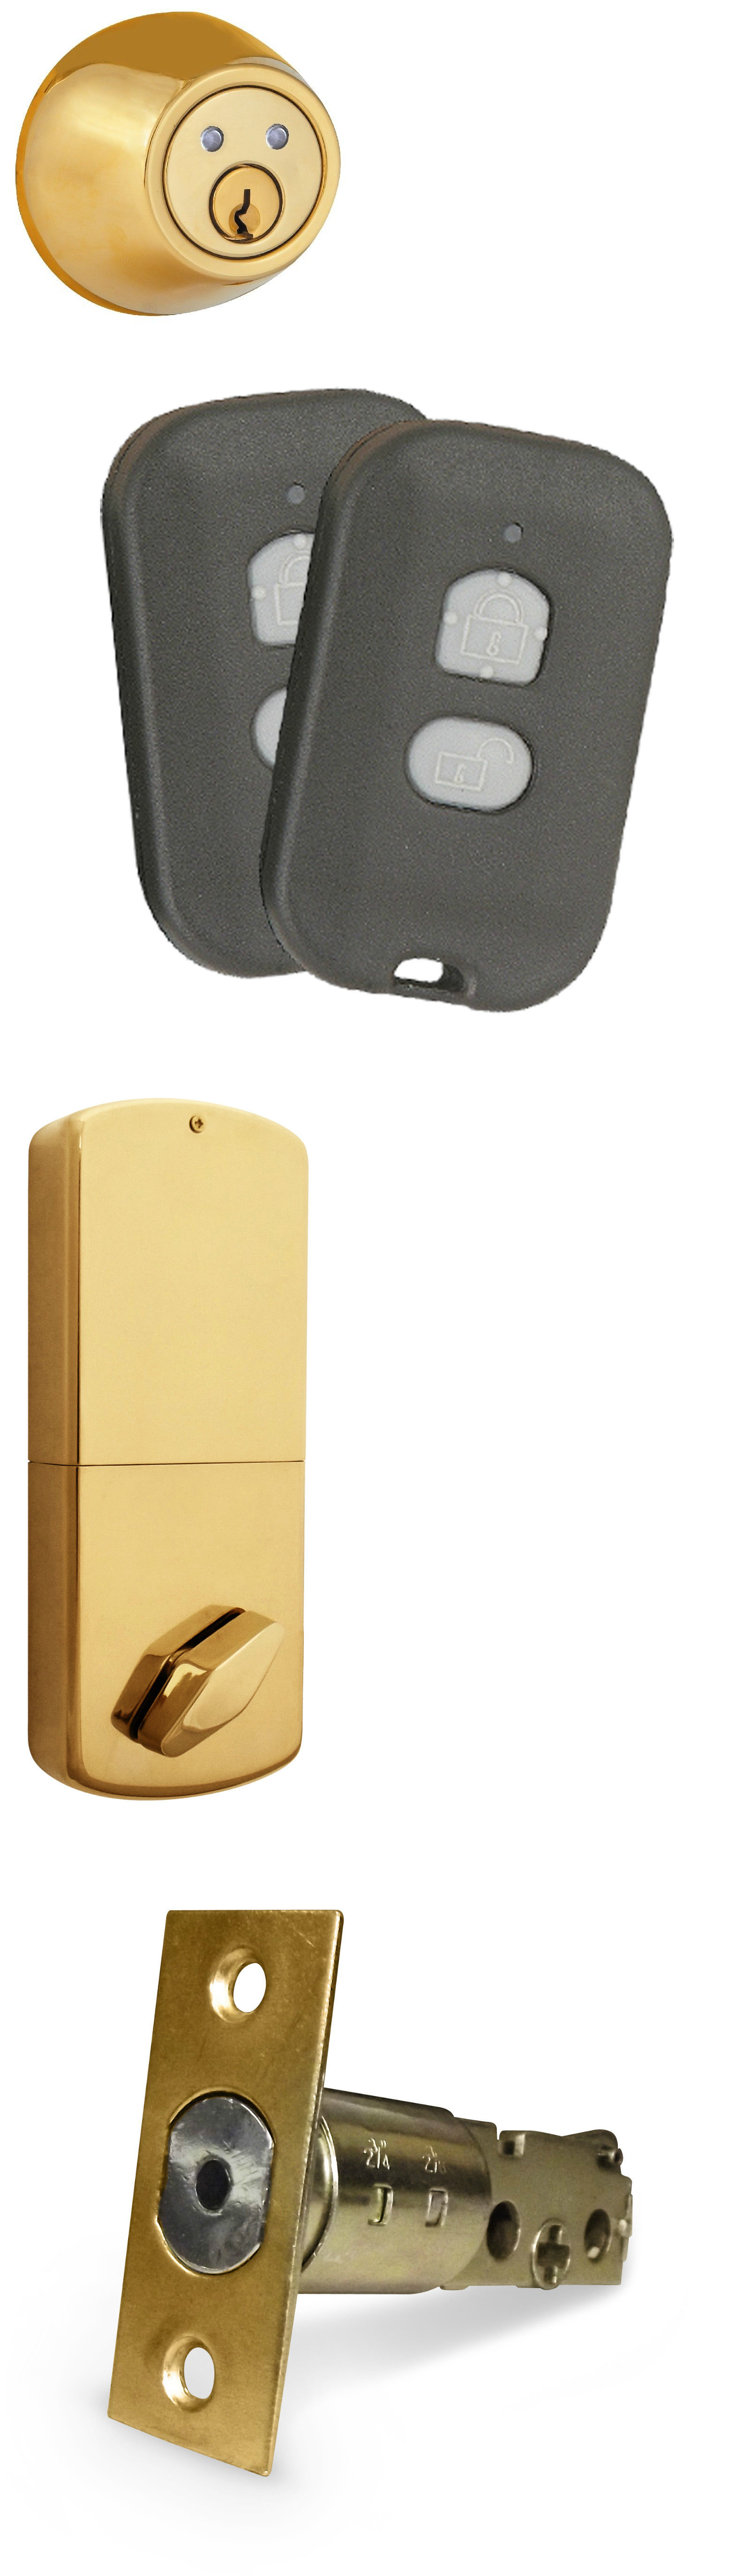 lock home product l excellence remote p electronic official taiwan series ezlock door keypad en award type